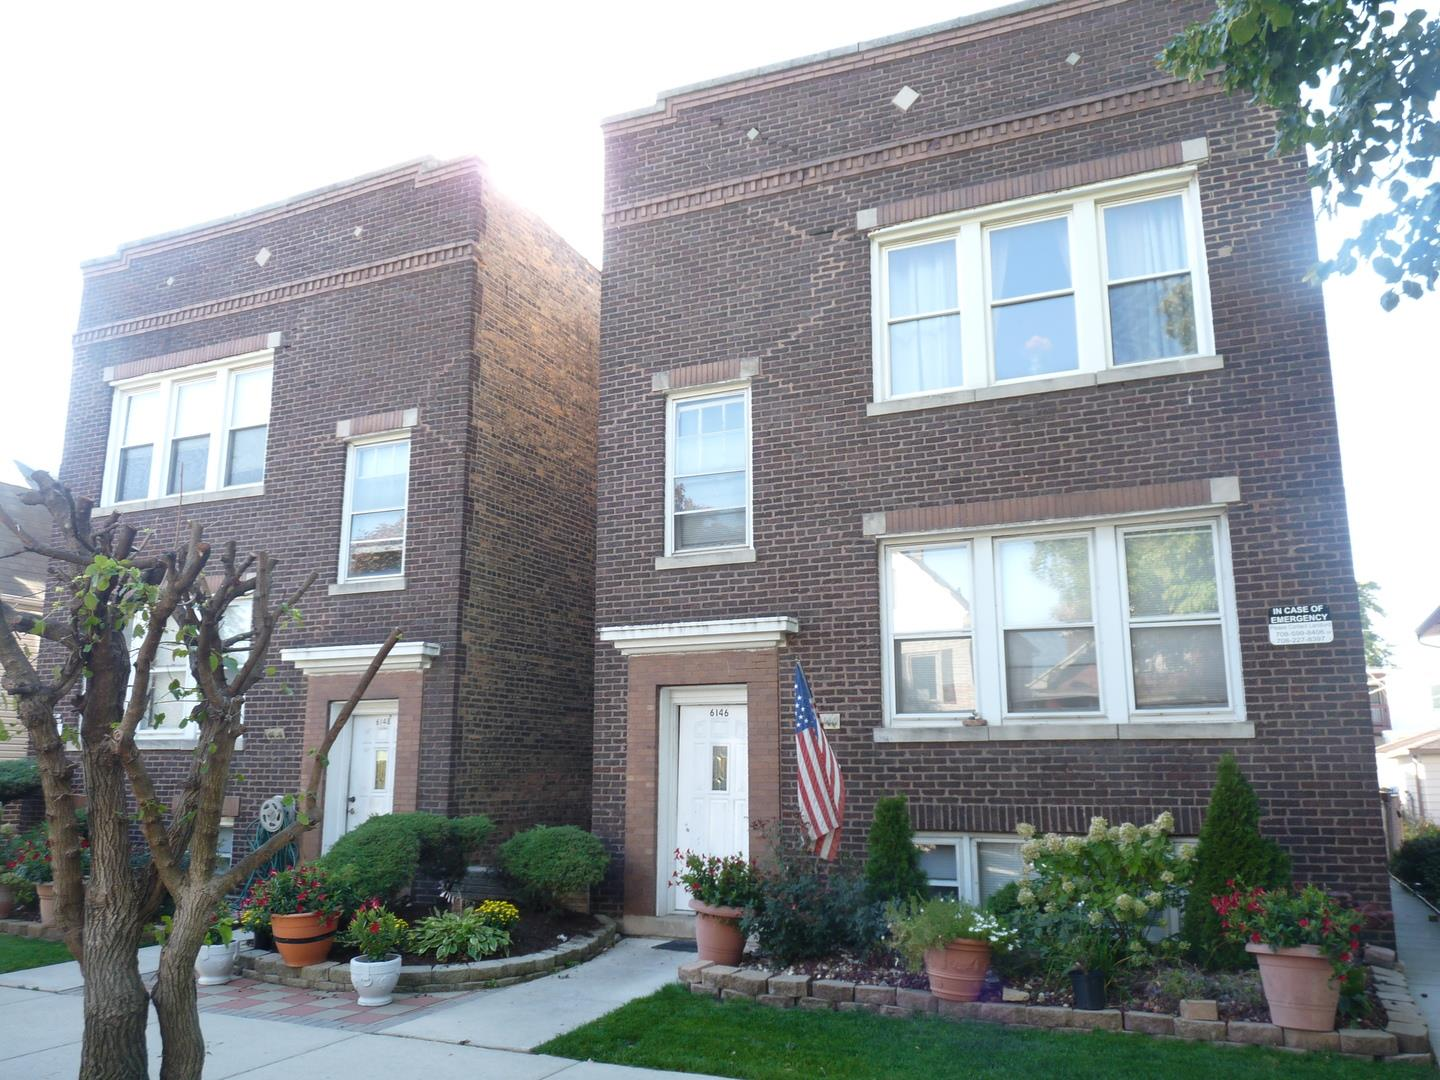 6146 S Parkside Avenue, Chicago, IL 60638 - #: 10902365